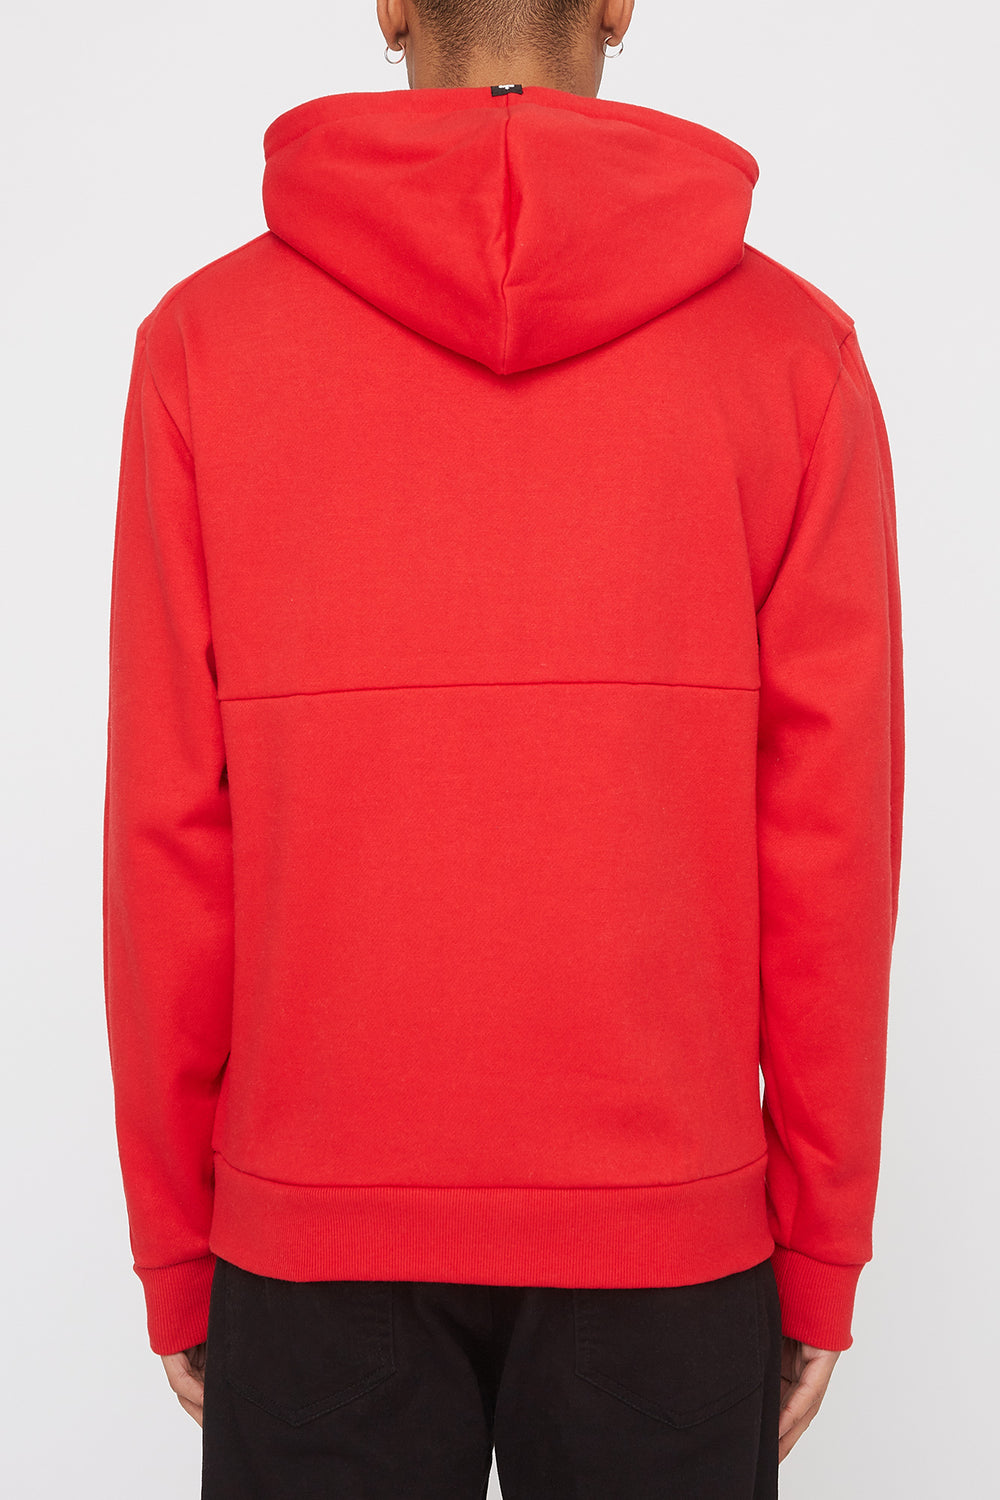 Zoo York Mens Embroidered Logo Hoodie Red